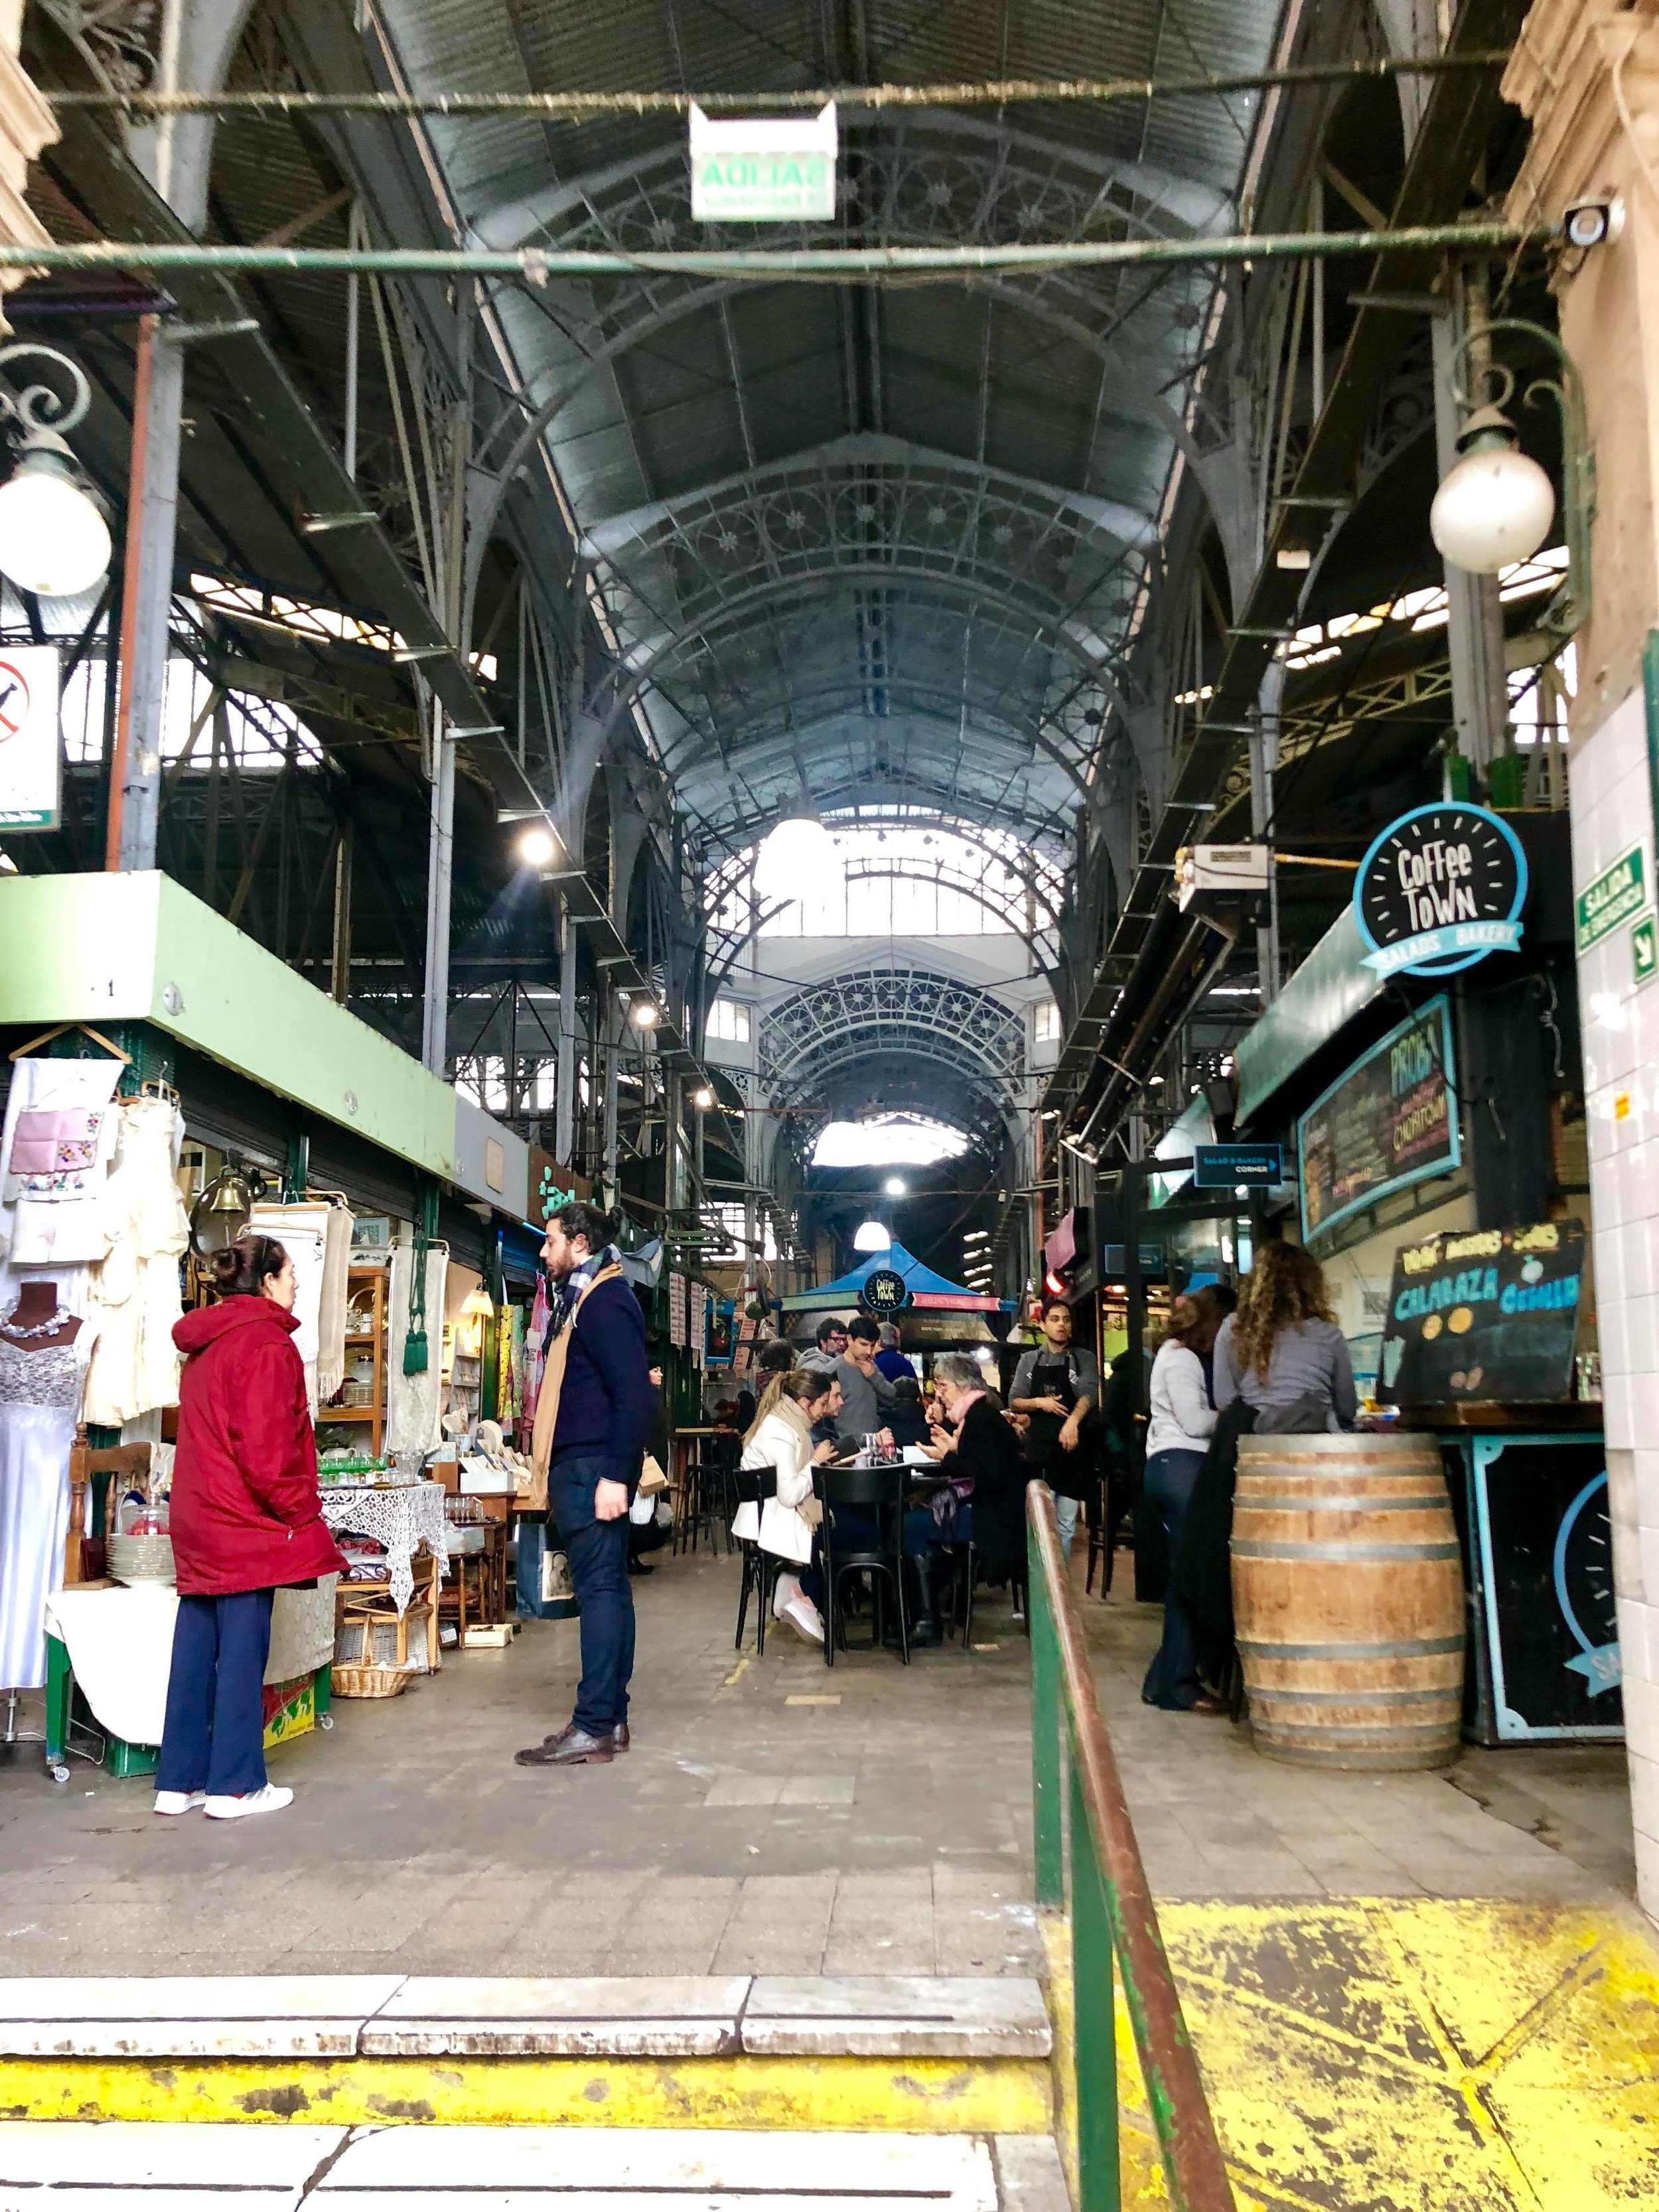 - I believe this is the San Telmo market, one of the largest in the city. The coffee shop on the right, 'Coffee Town,' is known for serving up a great cup of joe if you're in need of a caffeine kick or even need a quick bite to eat.